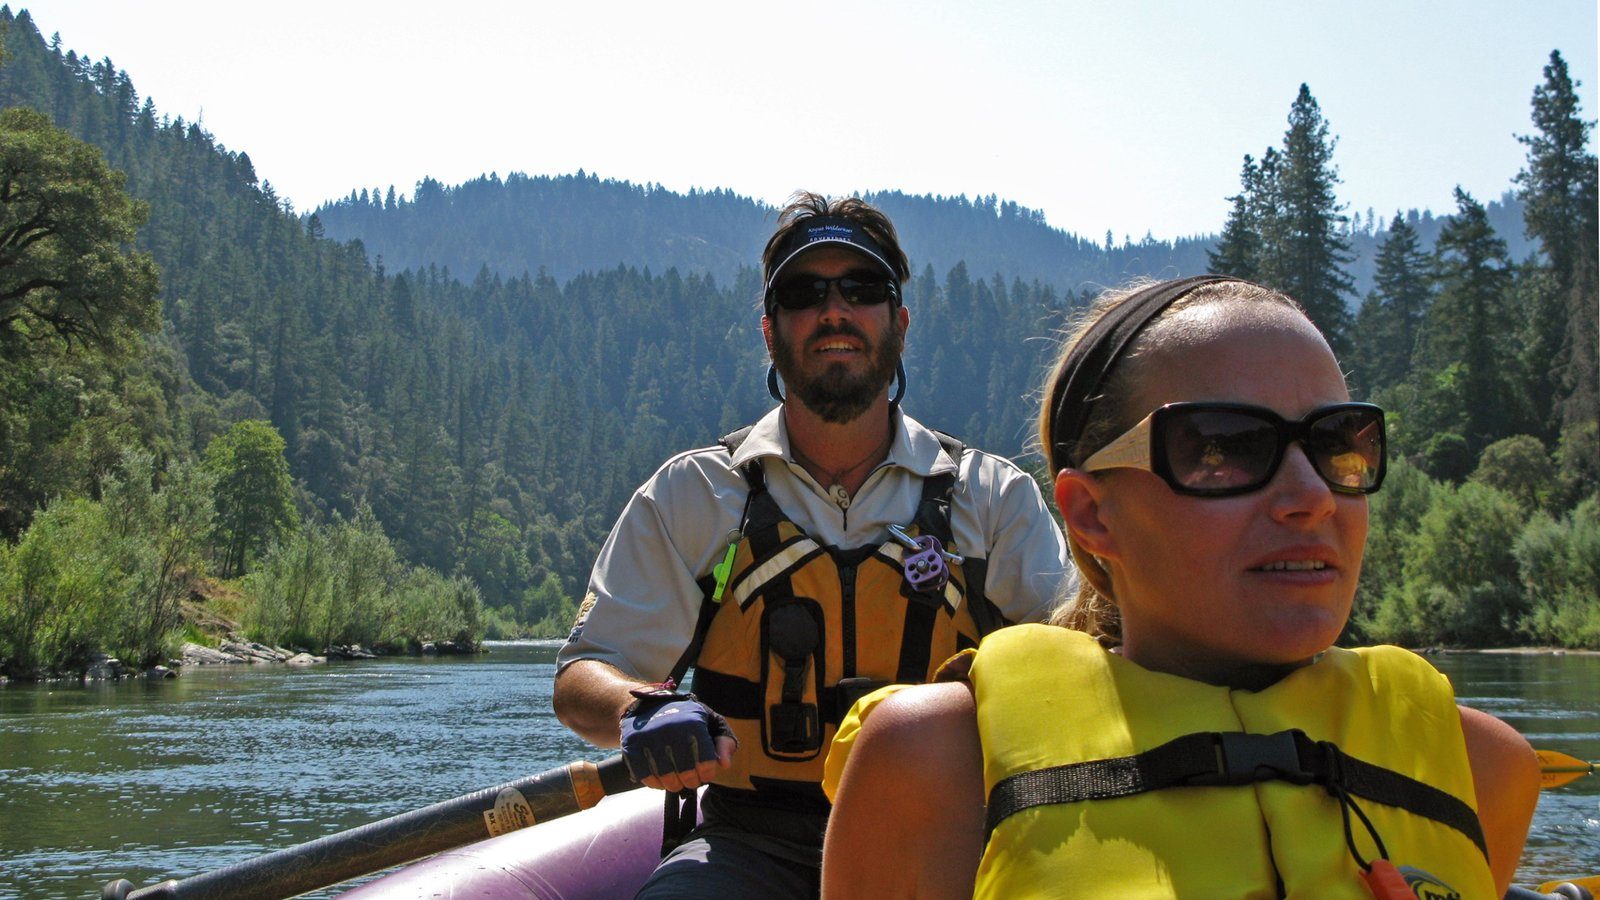 Rogue River featuring rafting, a river or creek and forests